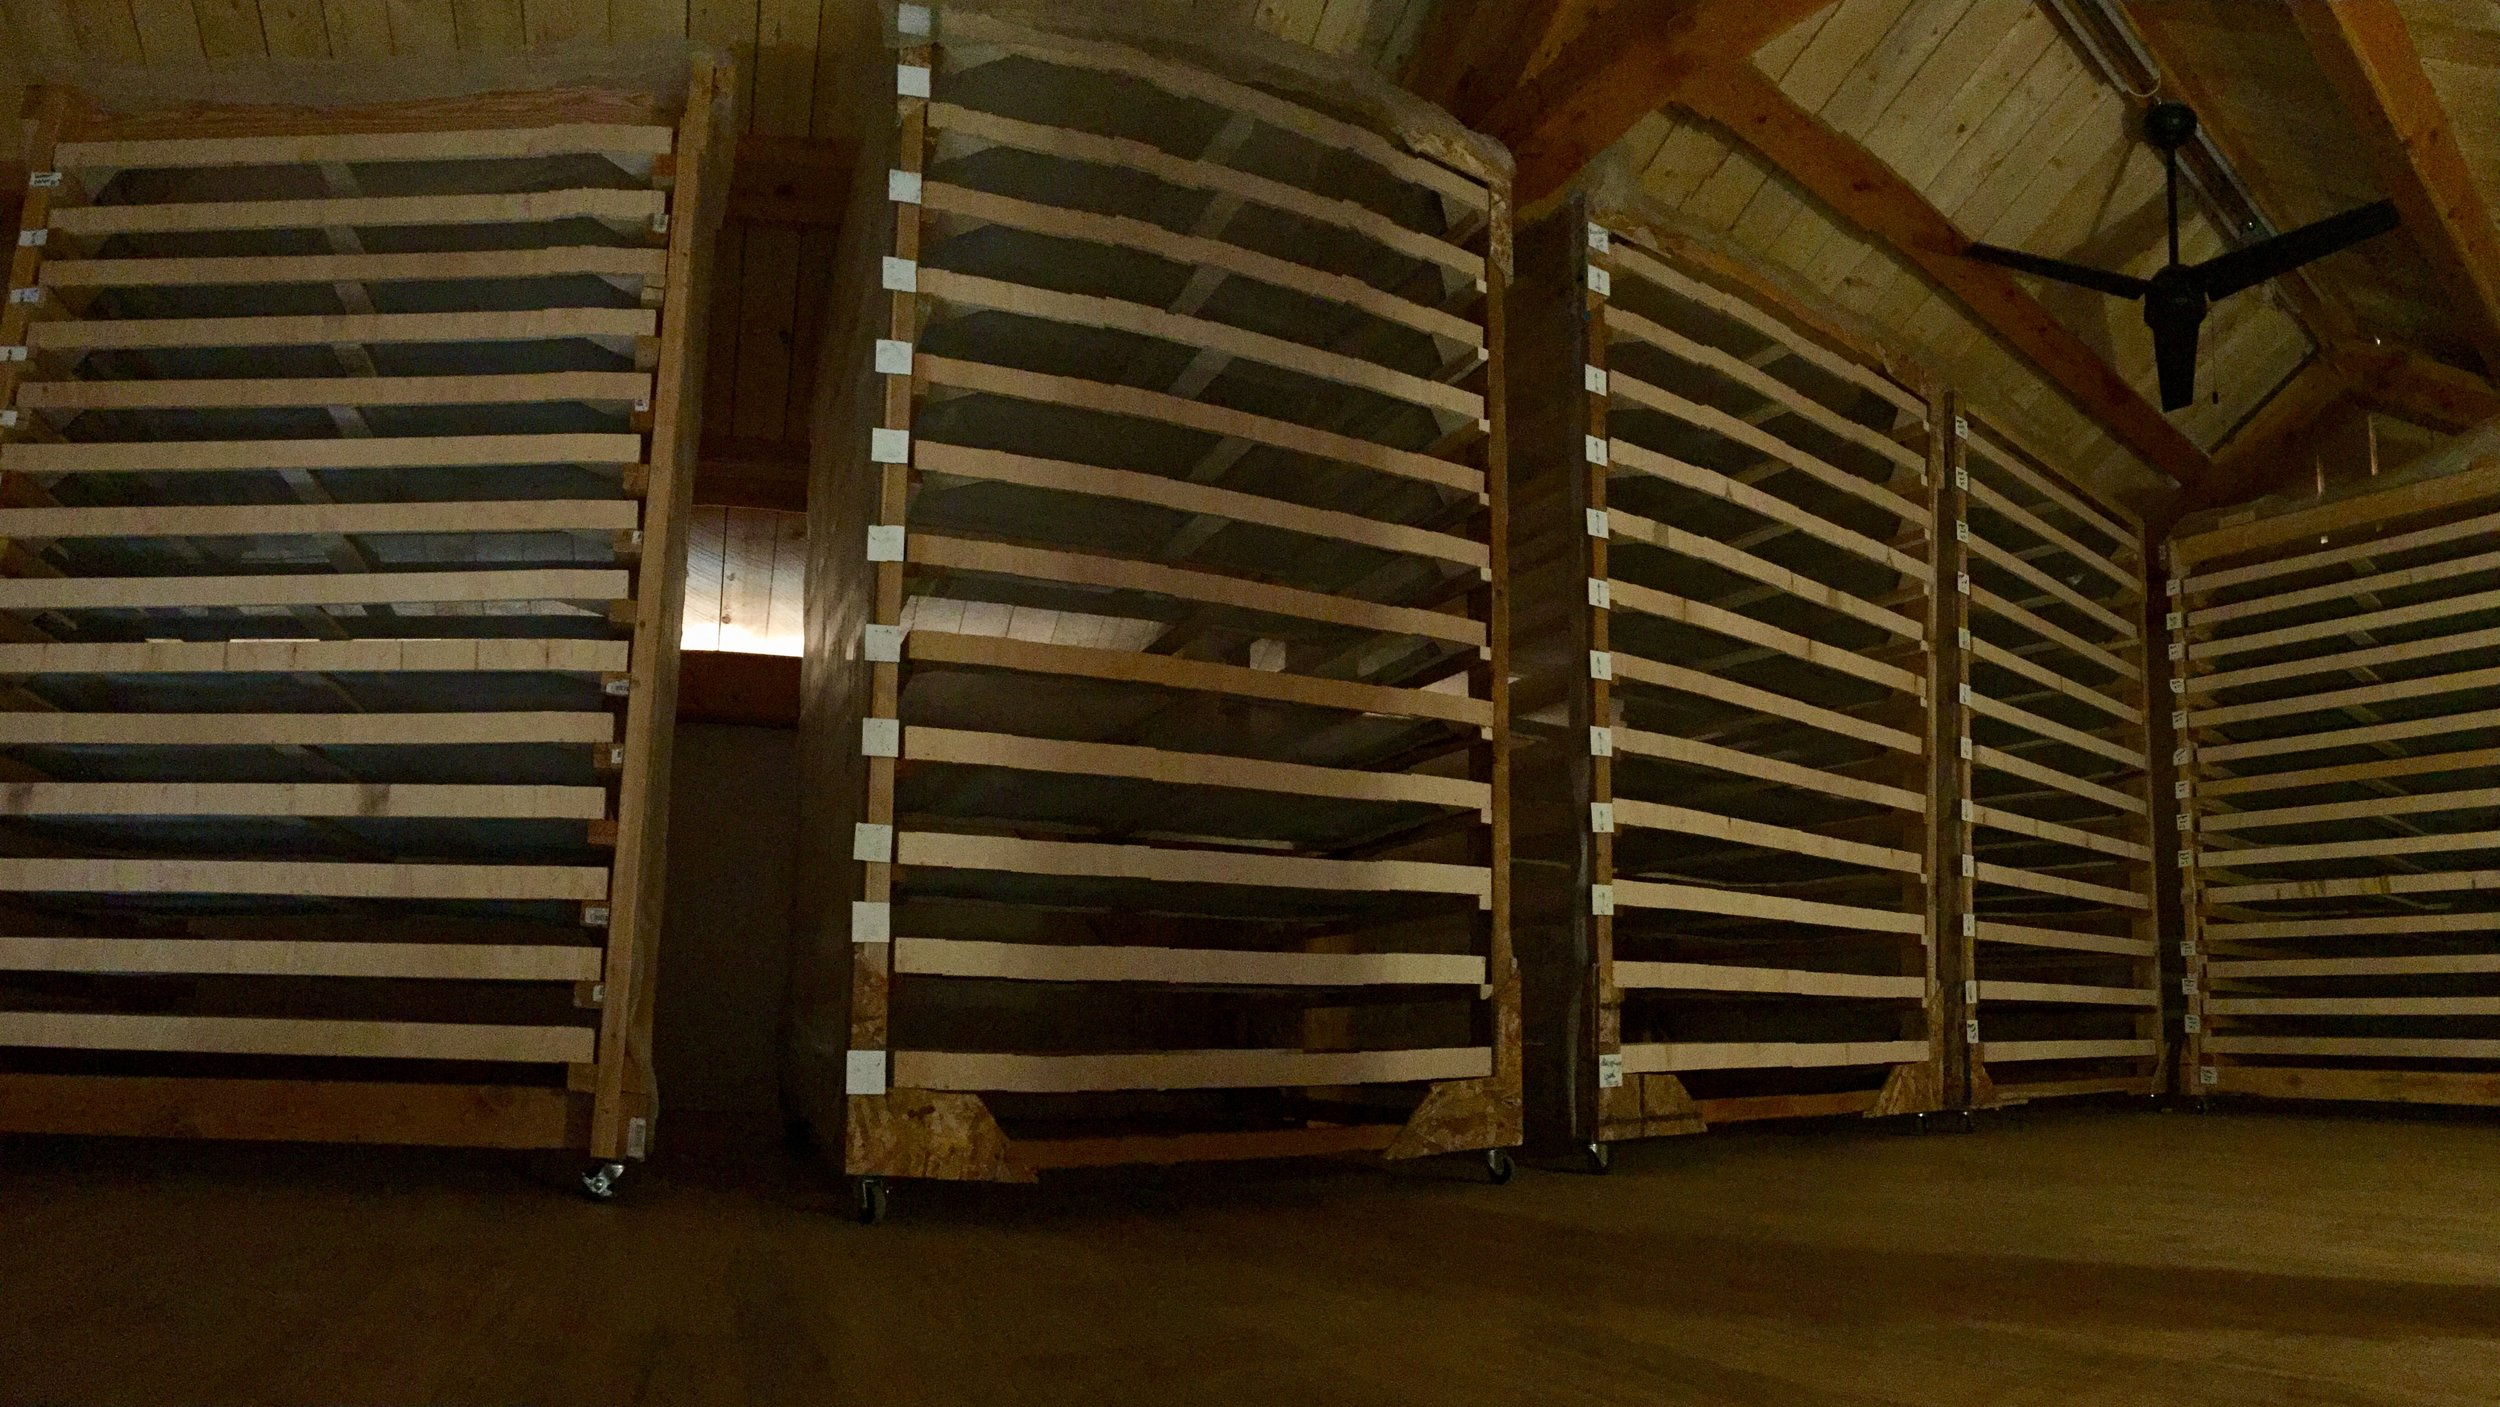 Step 7: Rack It - This is part 2 of our custom-designed herb drying process.Cleaned and bedded, the framed herbs are slid into these movable shelf units.In our drying loft, it is quiet and dark; the airflow is gentle and warm.It's the perfect conditions for drying the clean herbs.